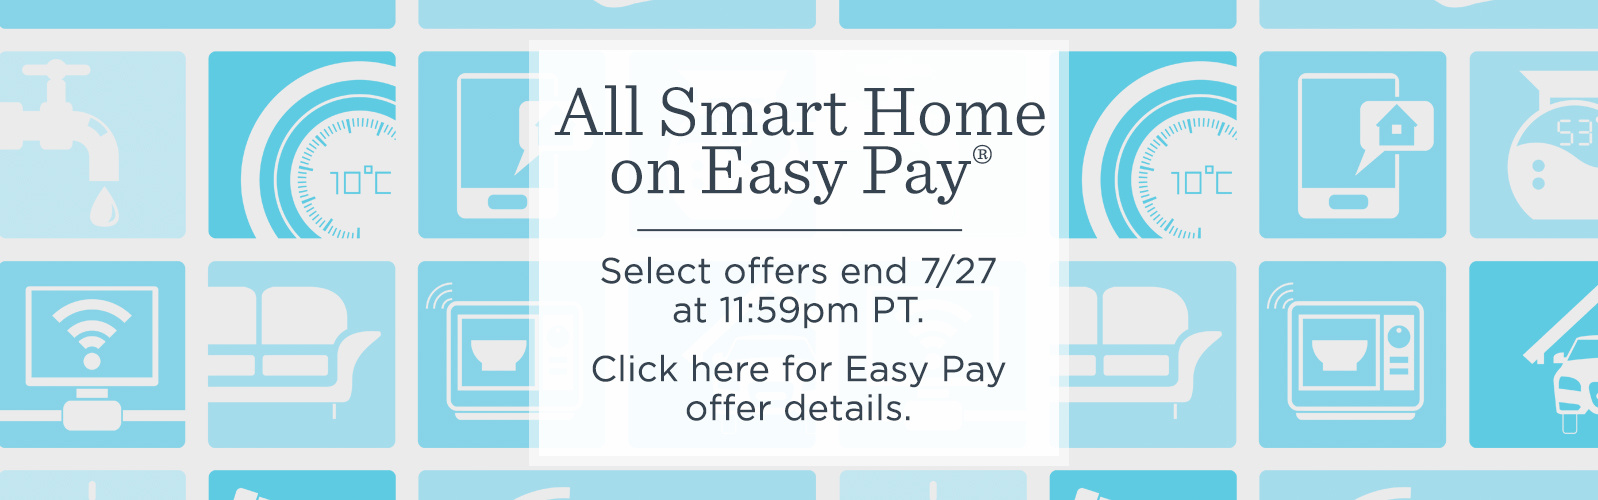 All Smart Home on Easy Pay®. Select offers end 7/27 at 11:59pm PT.  Click here for Easy Pay offer details.